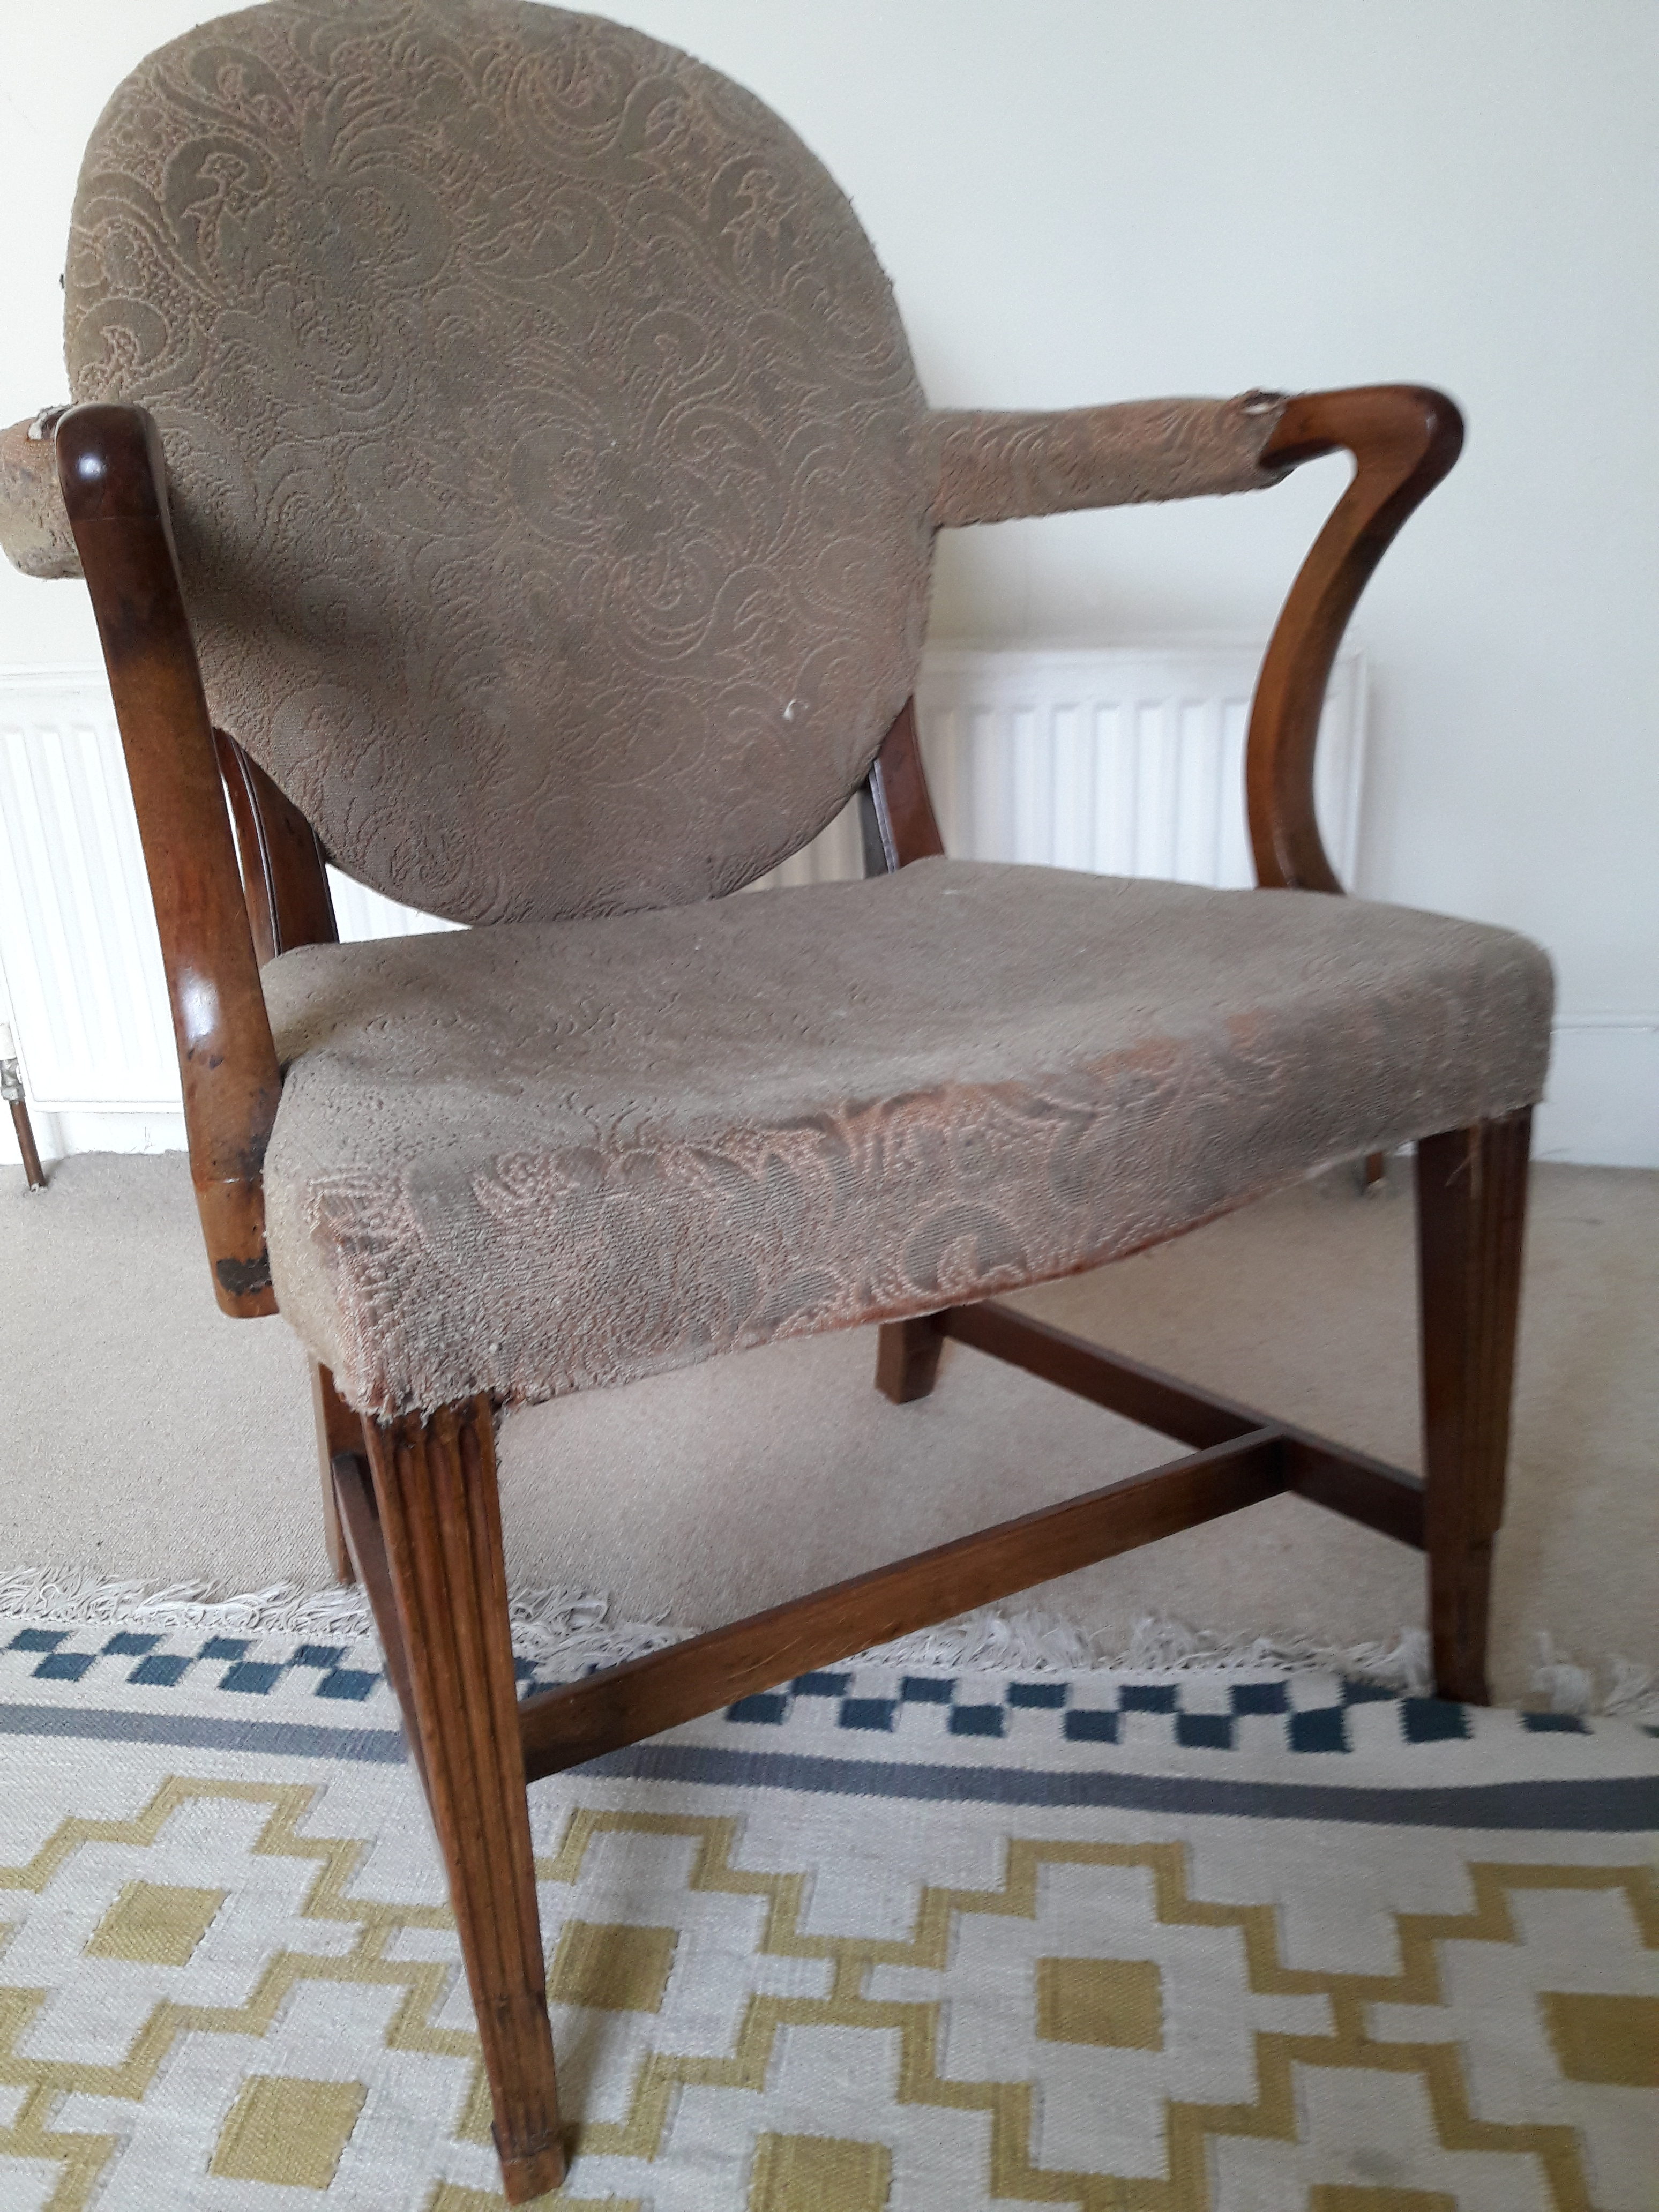 This Is The Chair My Father Sat On At His Bureau, In The Room We Called The  Drawing Room In The House Where I Grew Up.